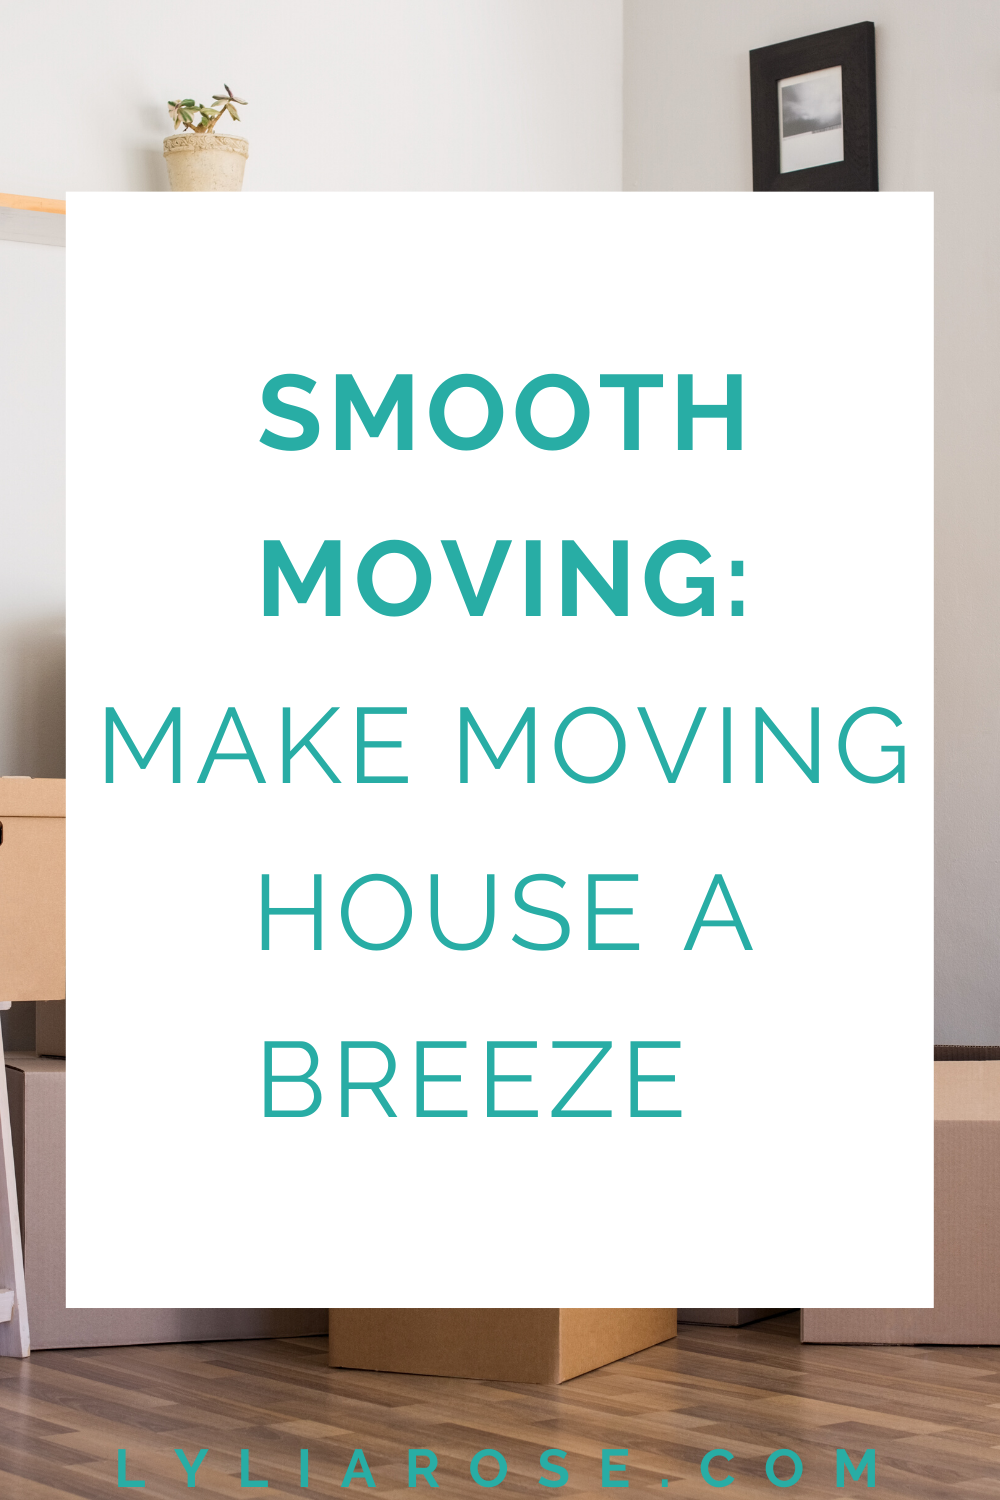 Smooth moving_ make moving house a breeze